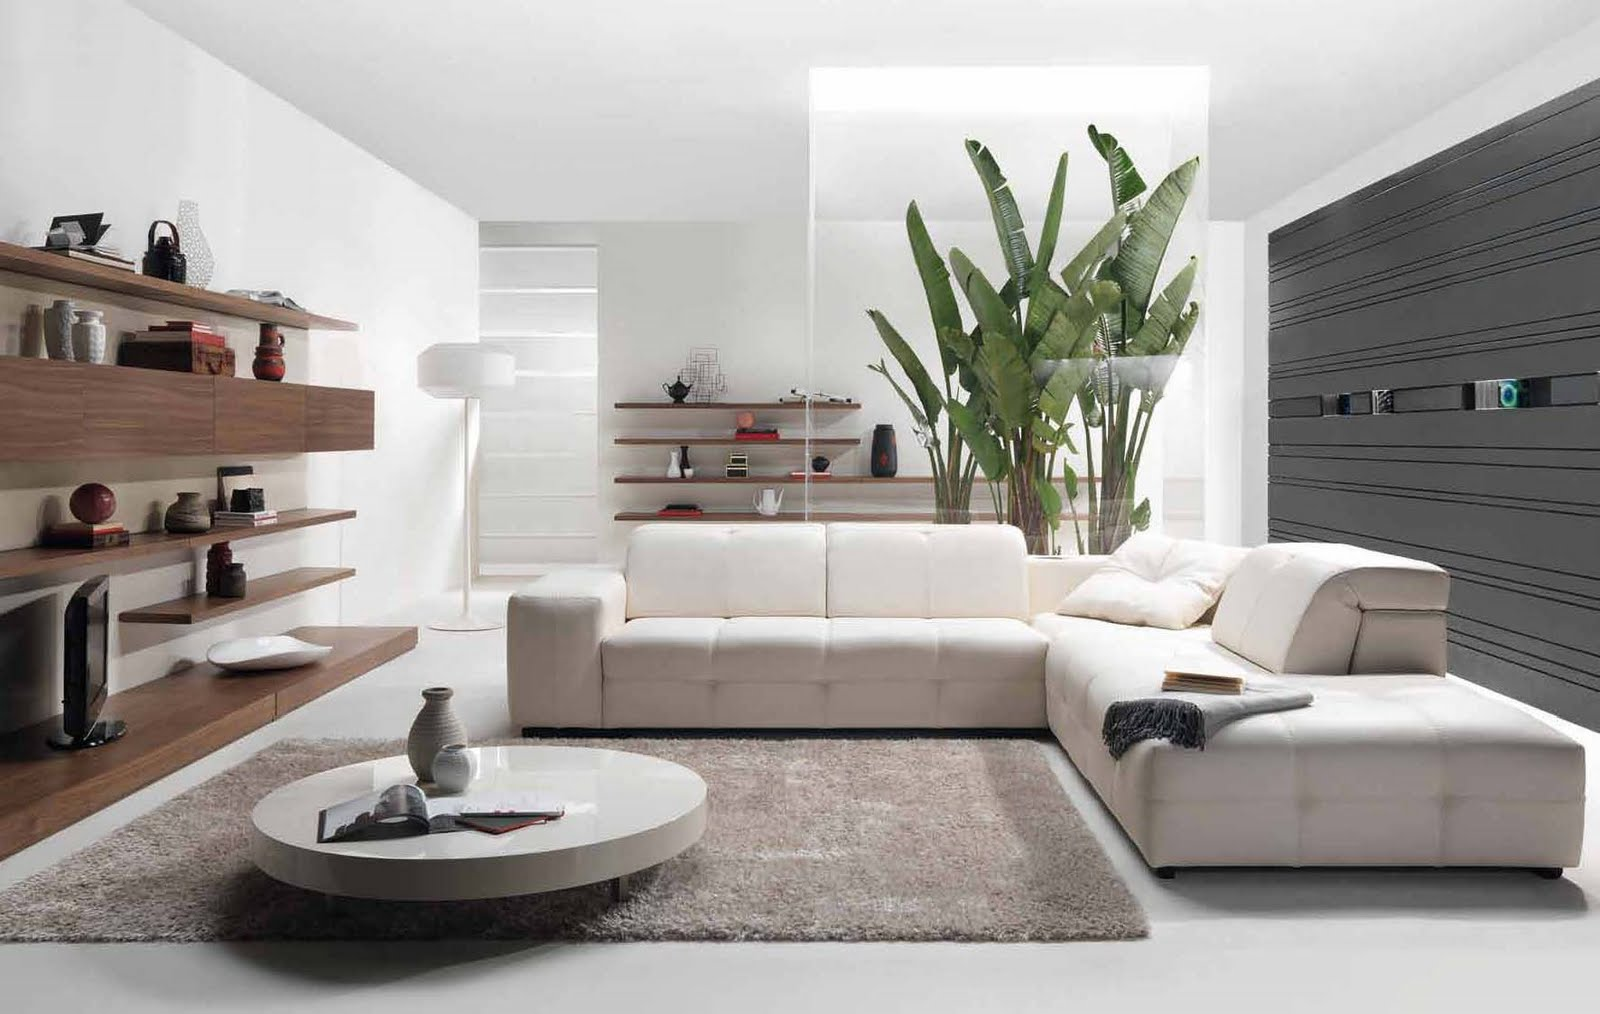 mesmerizing-marble-round-coffee-table-with-wooden-mounted-entertainment-center-plus-shelf-and-white-sectional-sofa-in-living-room-decoration-ideas-also-gla